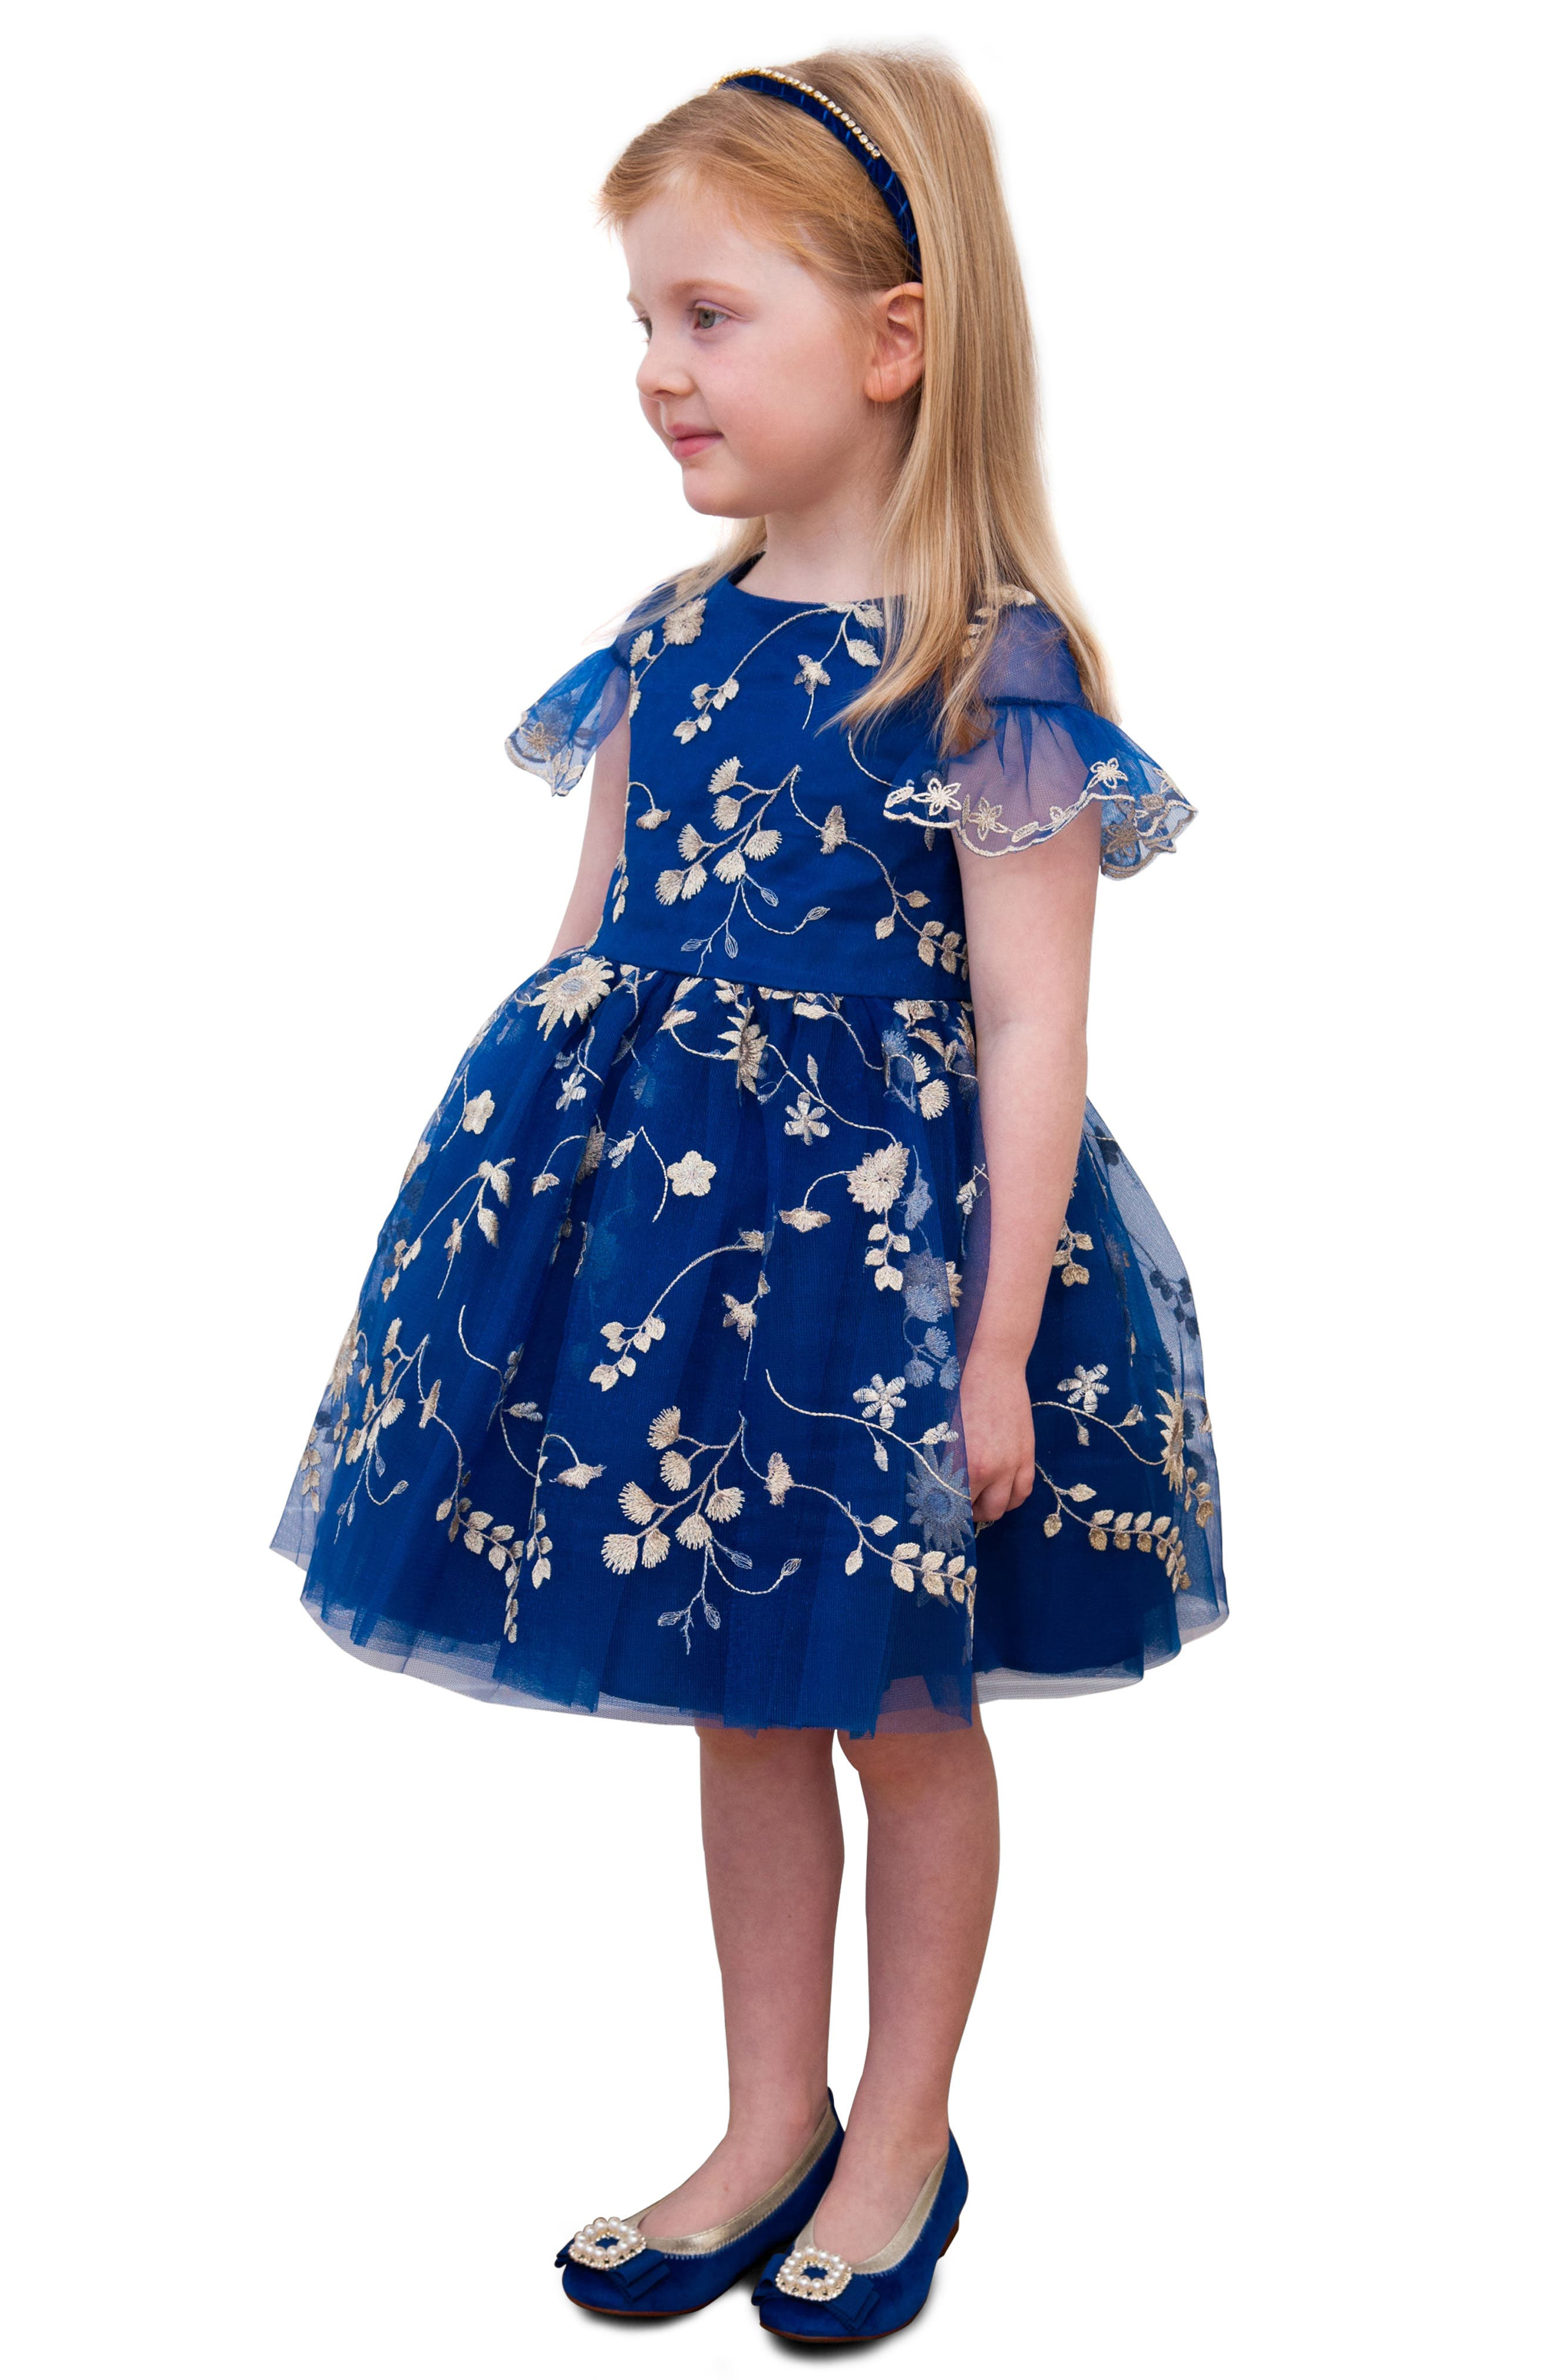 Floral Embroidery Dress,                             Alternate thumbnail 2, color,                             Royal Blue/ Gold